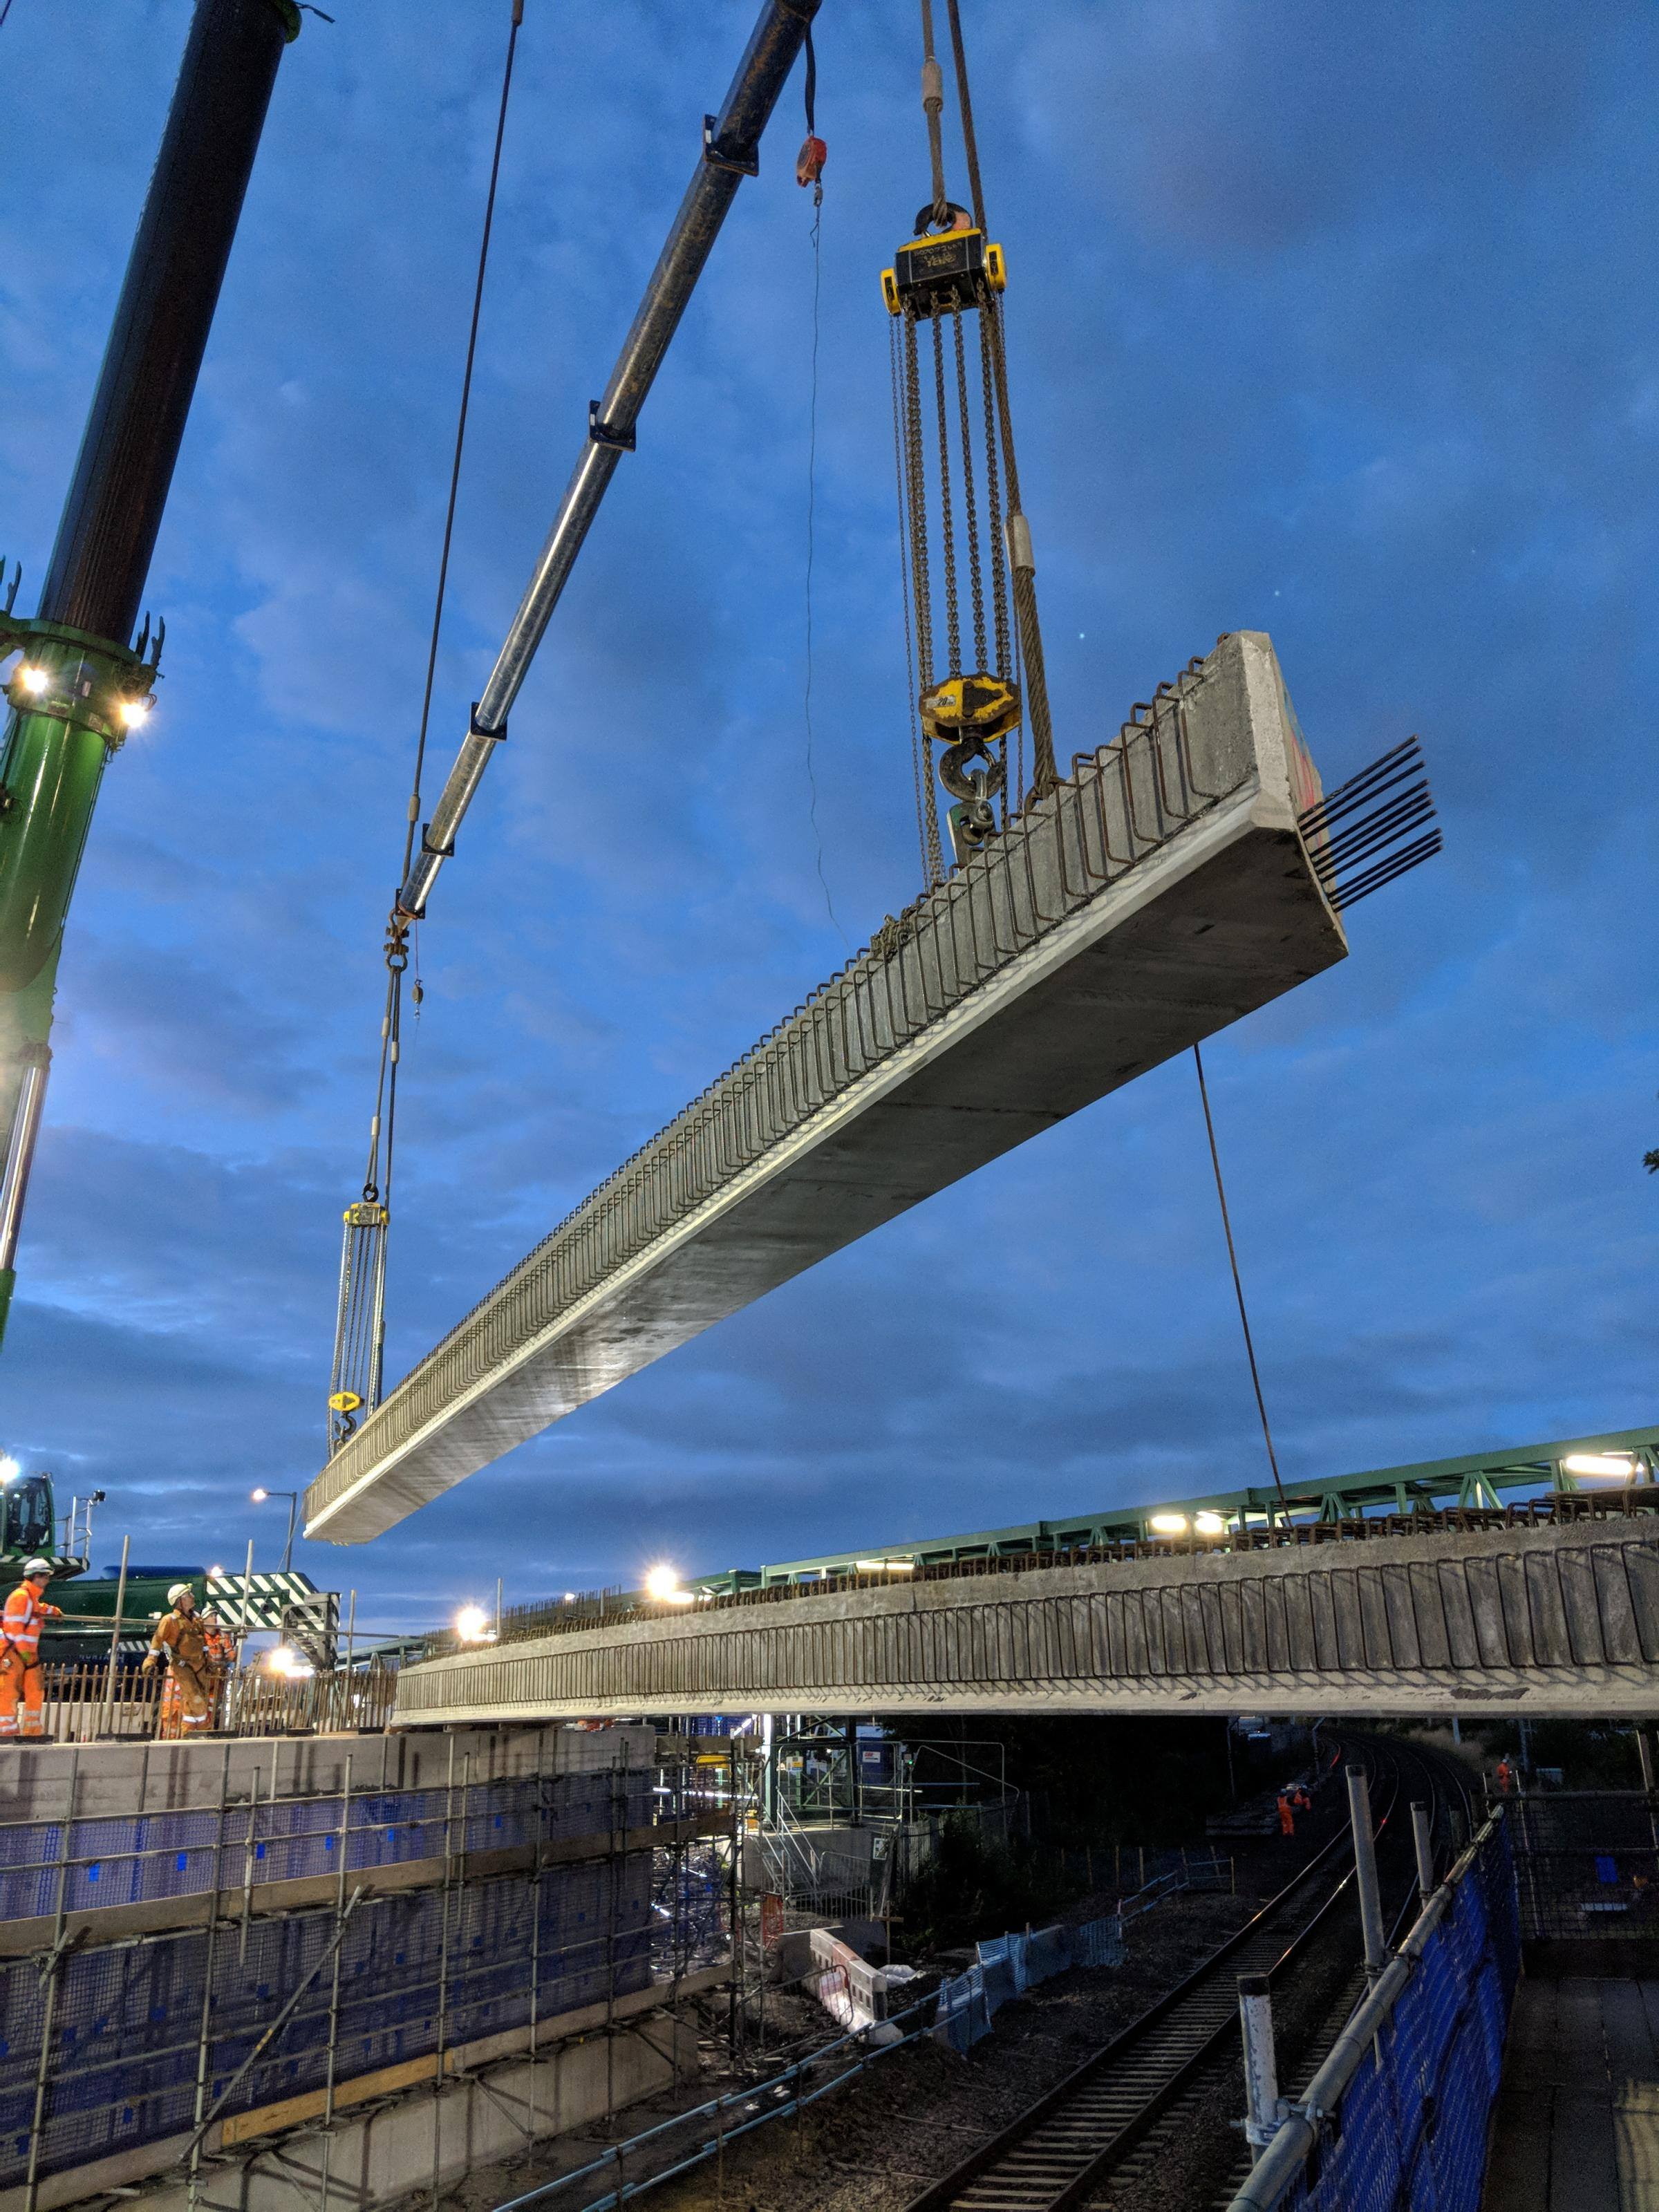 One of the beams being lifted in place by a 750t crane - courtesy of Network Rail